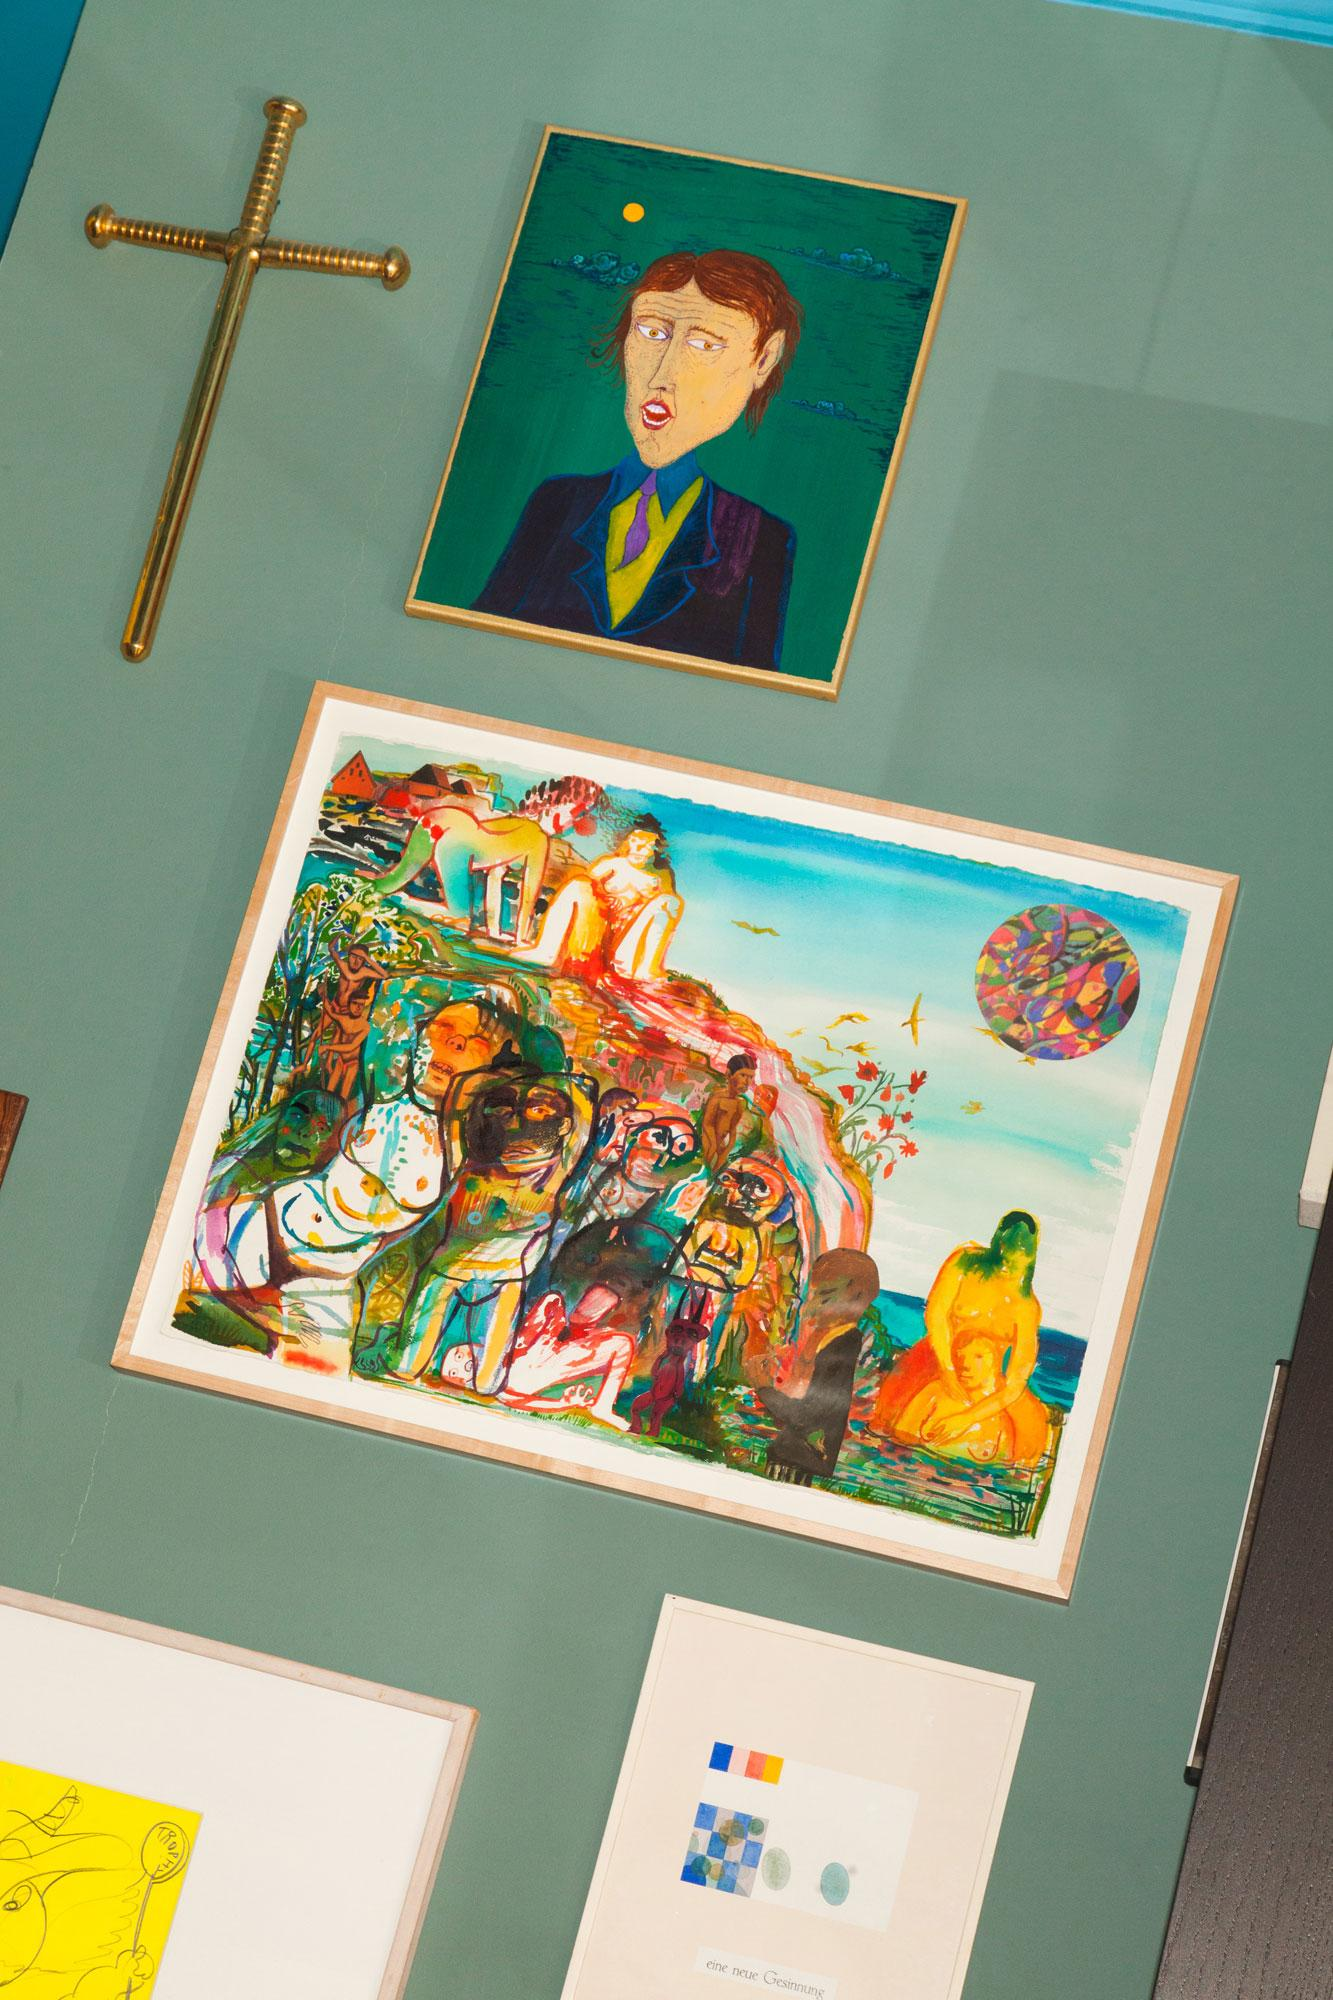 Top, left: /Memorial Cross for Pope Urban VI /by Shahpour Pouyan Top, right: Painting by Abel Auer Middle: Painting by Nicole Eisenman